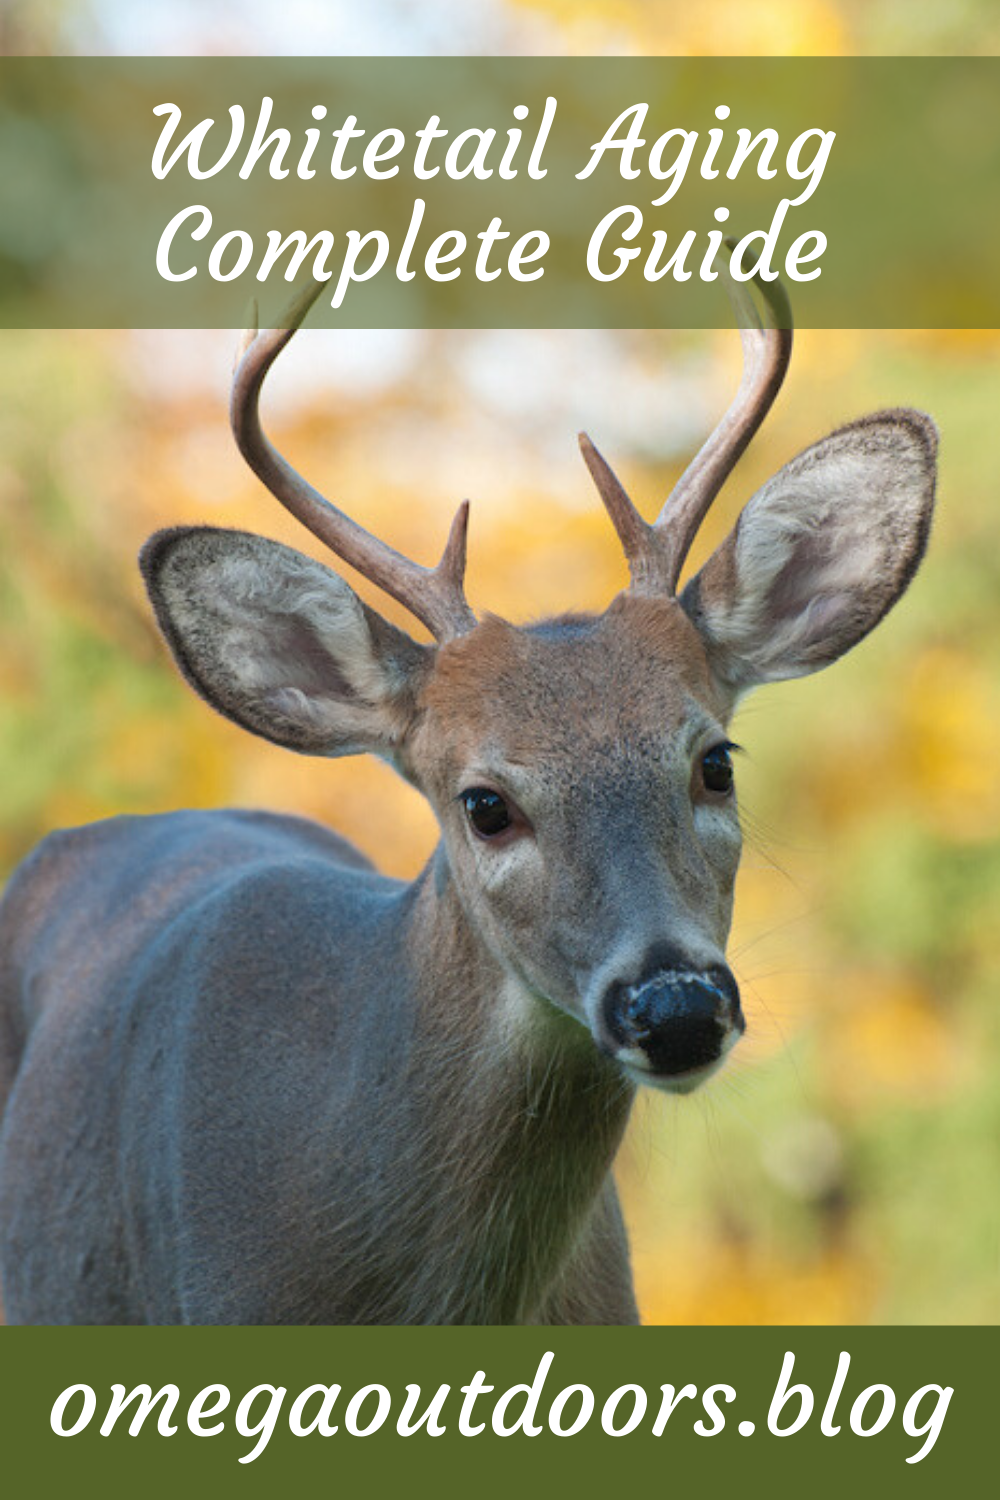 Complete Guide To Aging Whitetail Deer in 2020 Whitetail